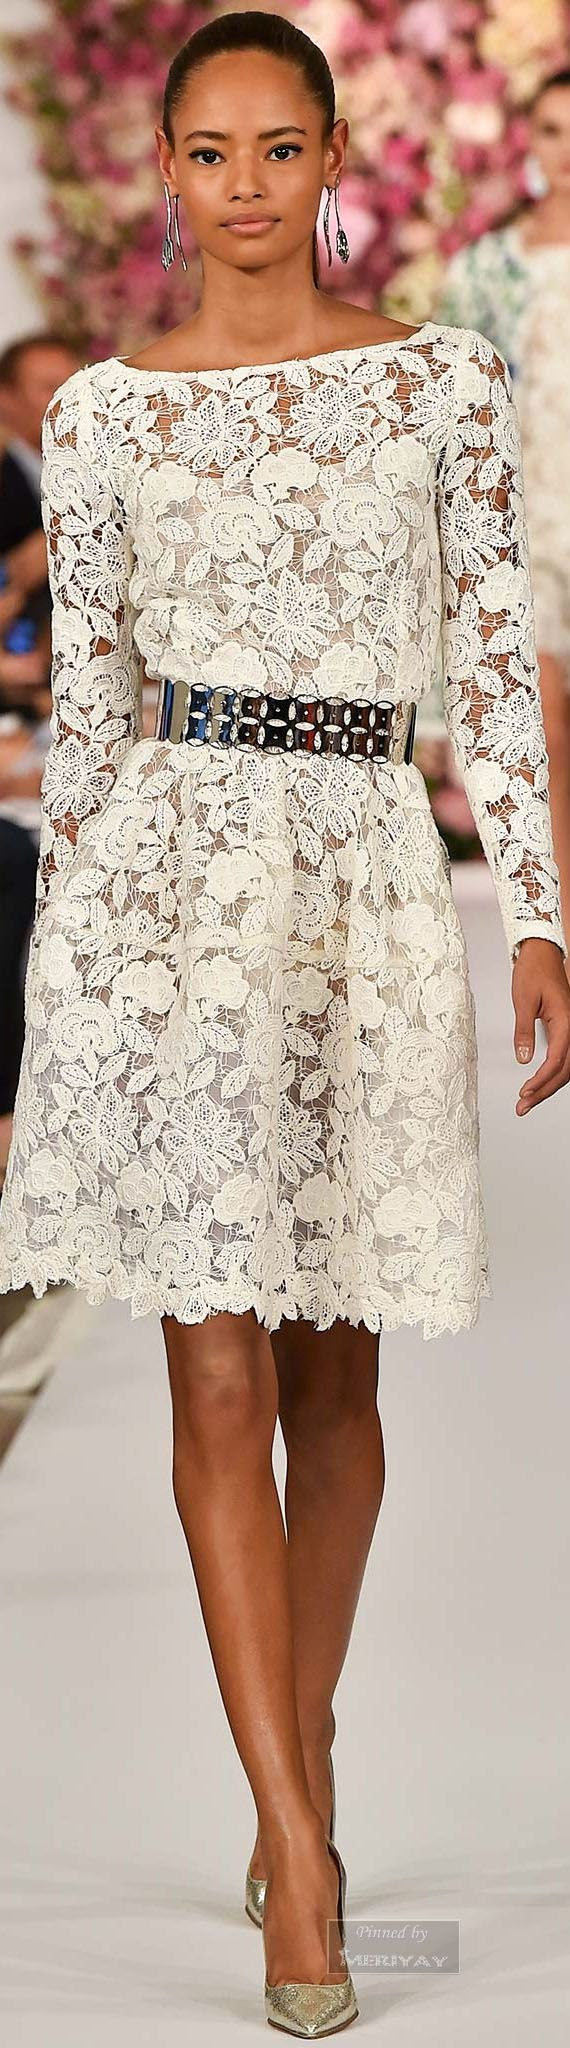 Oscar de la Renta.Spring 2015. Love the dress, ditch the belt for a satin sash or wide tan leather belt.